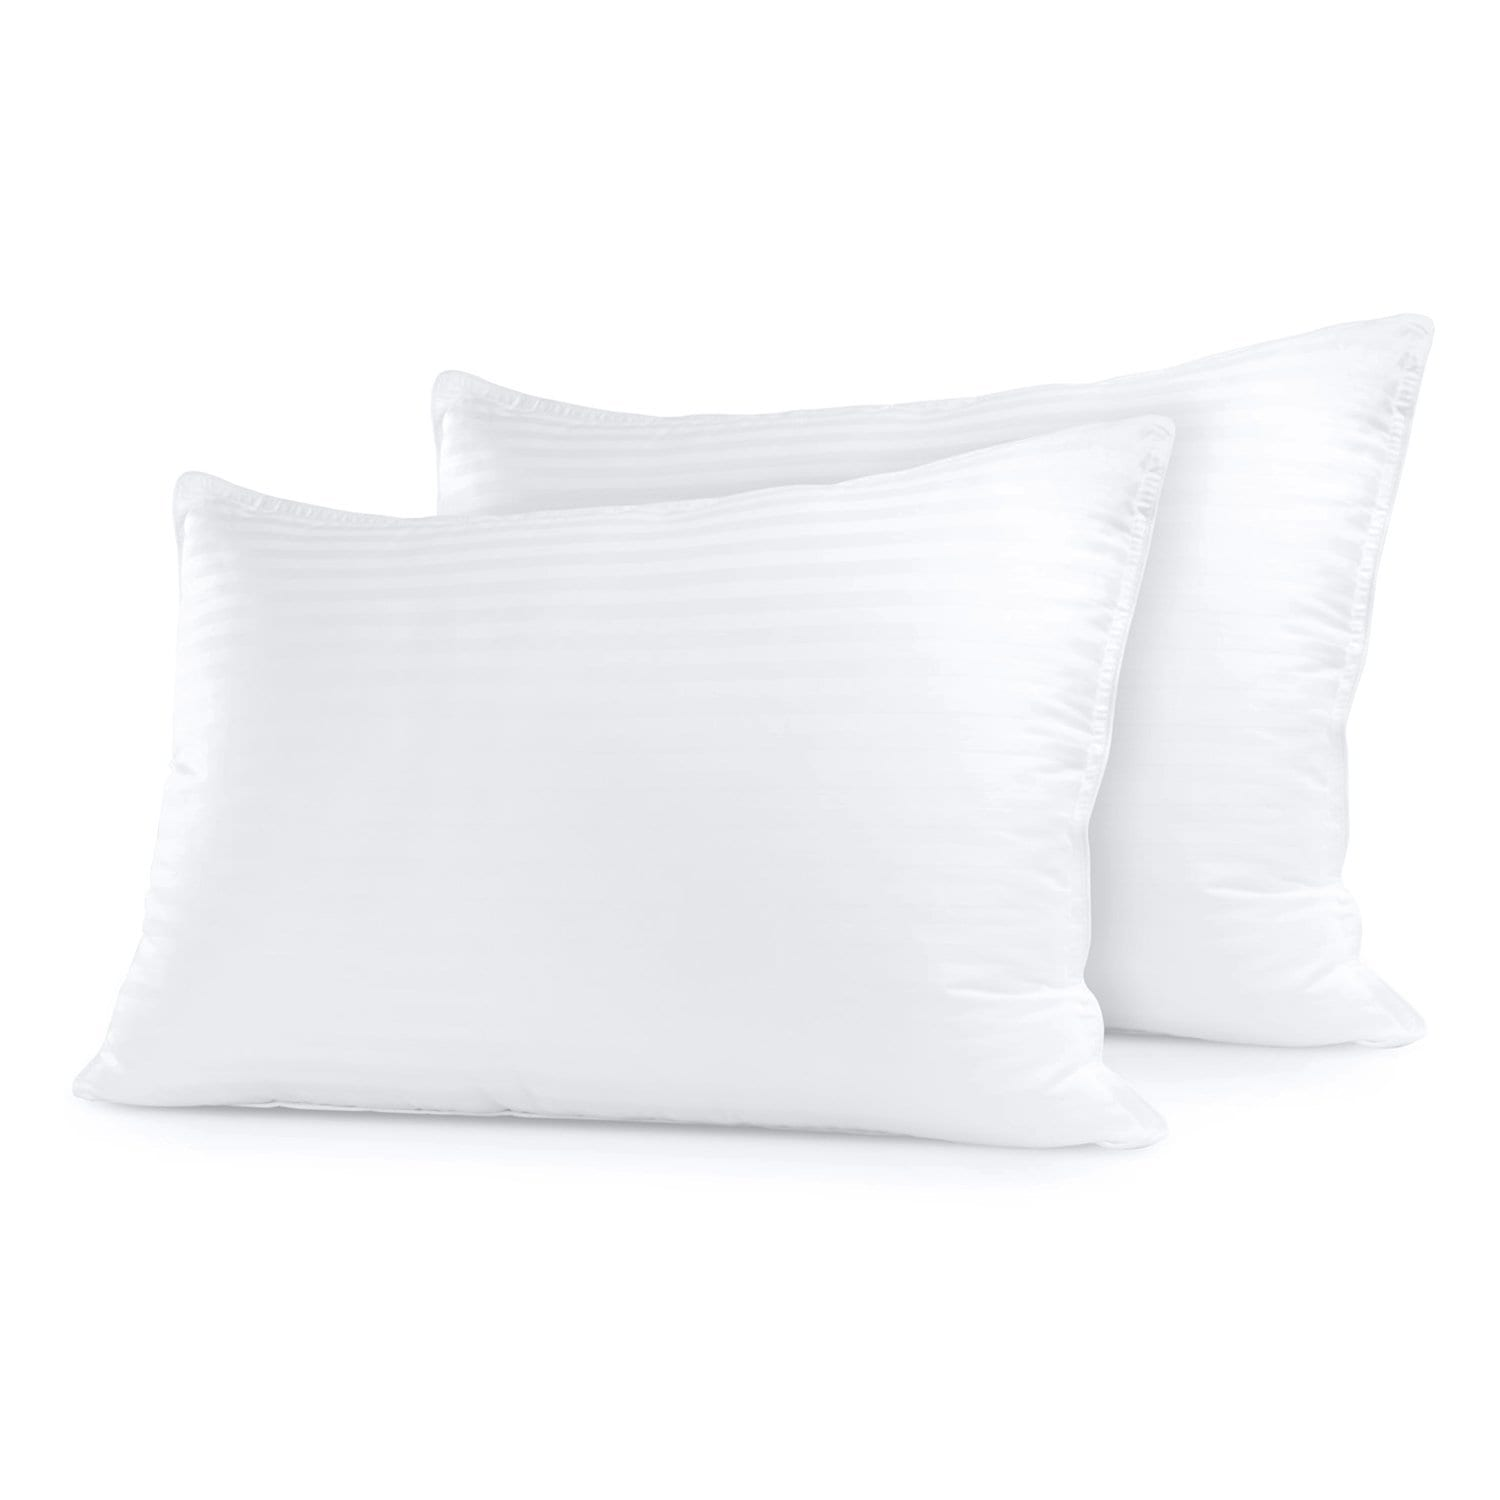 Sleep Restoration Gel Pillow Review by www.snoremagazine.com